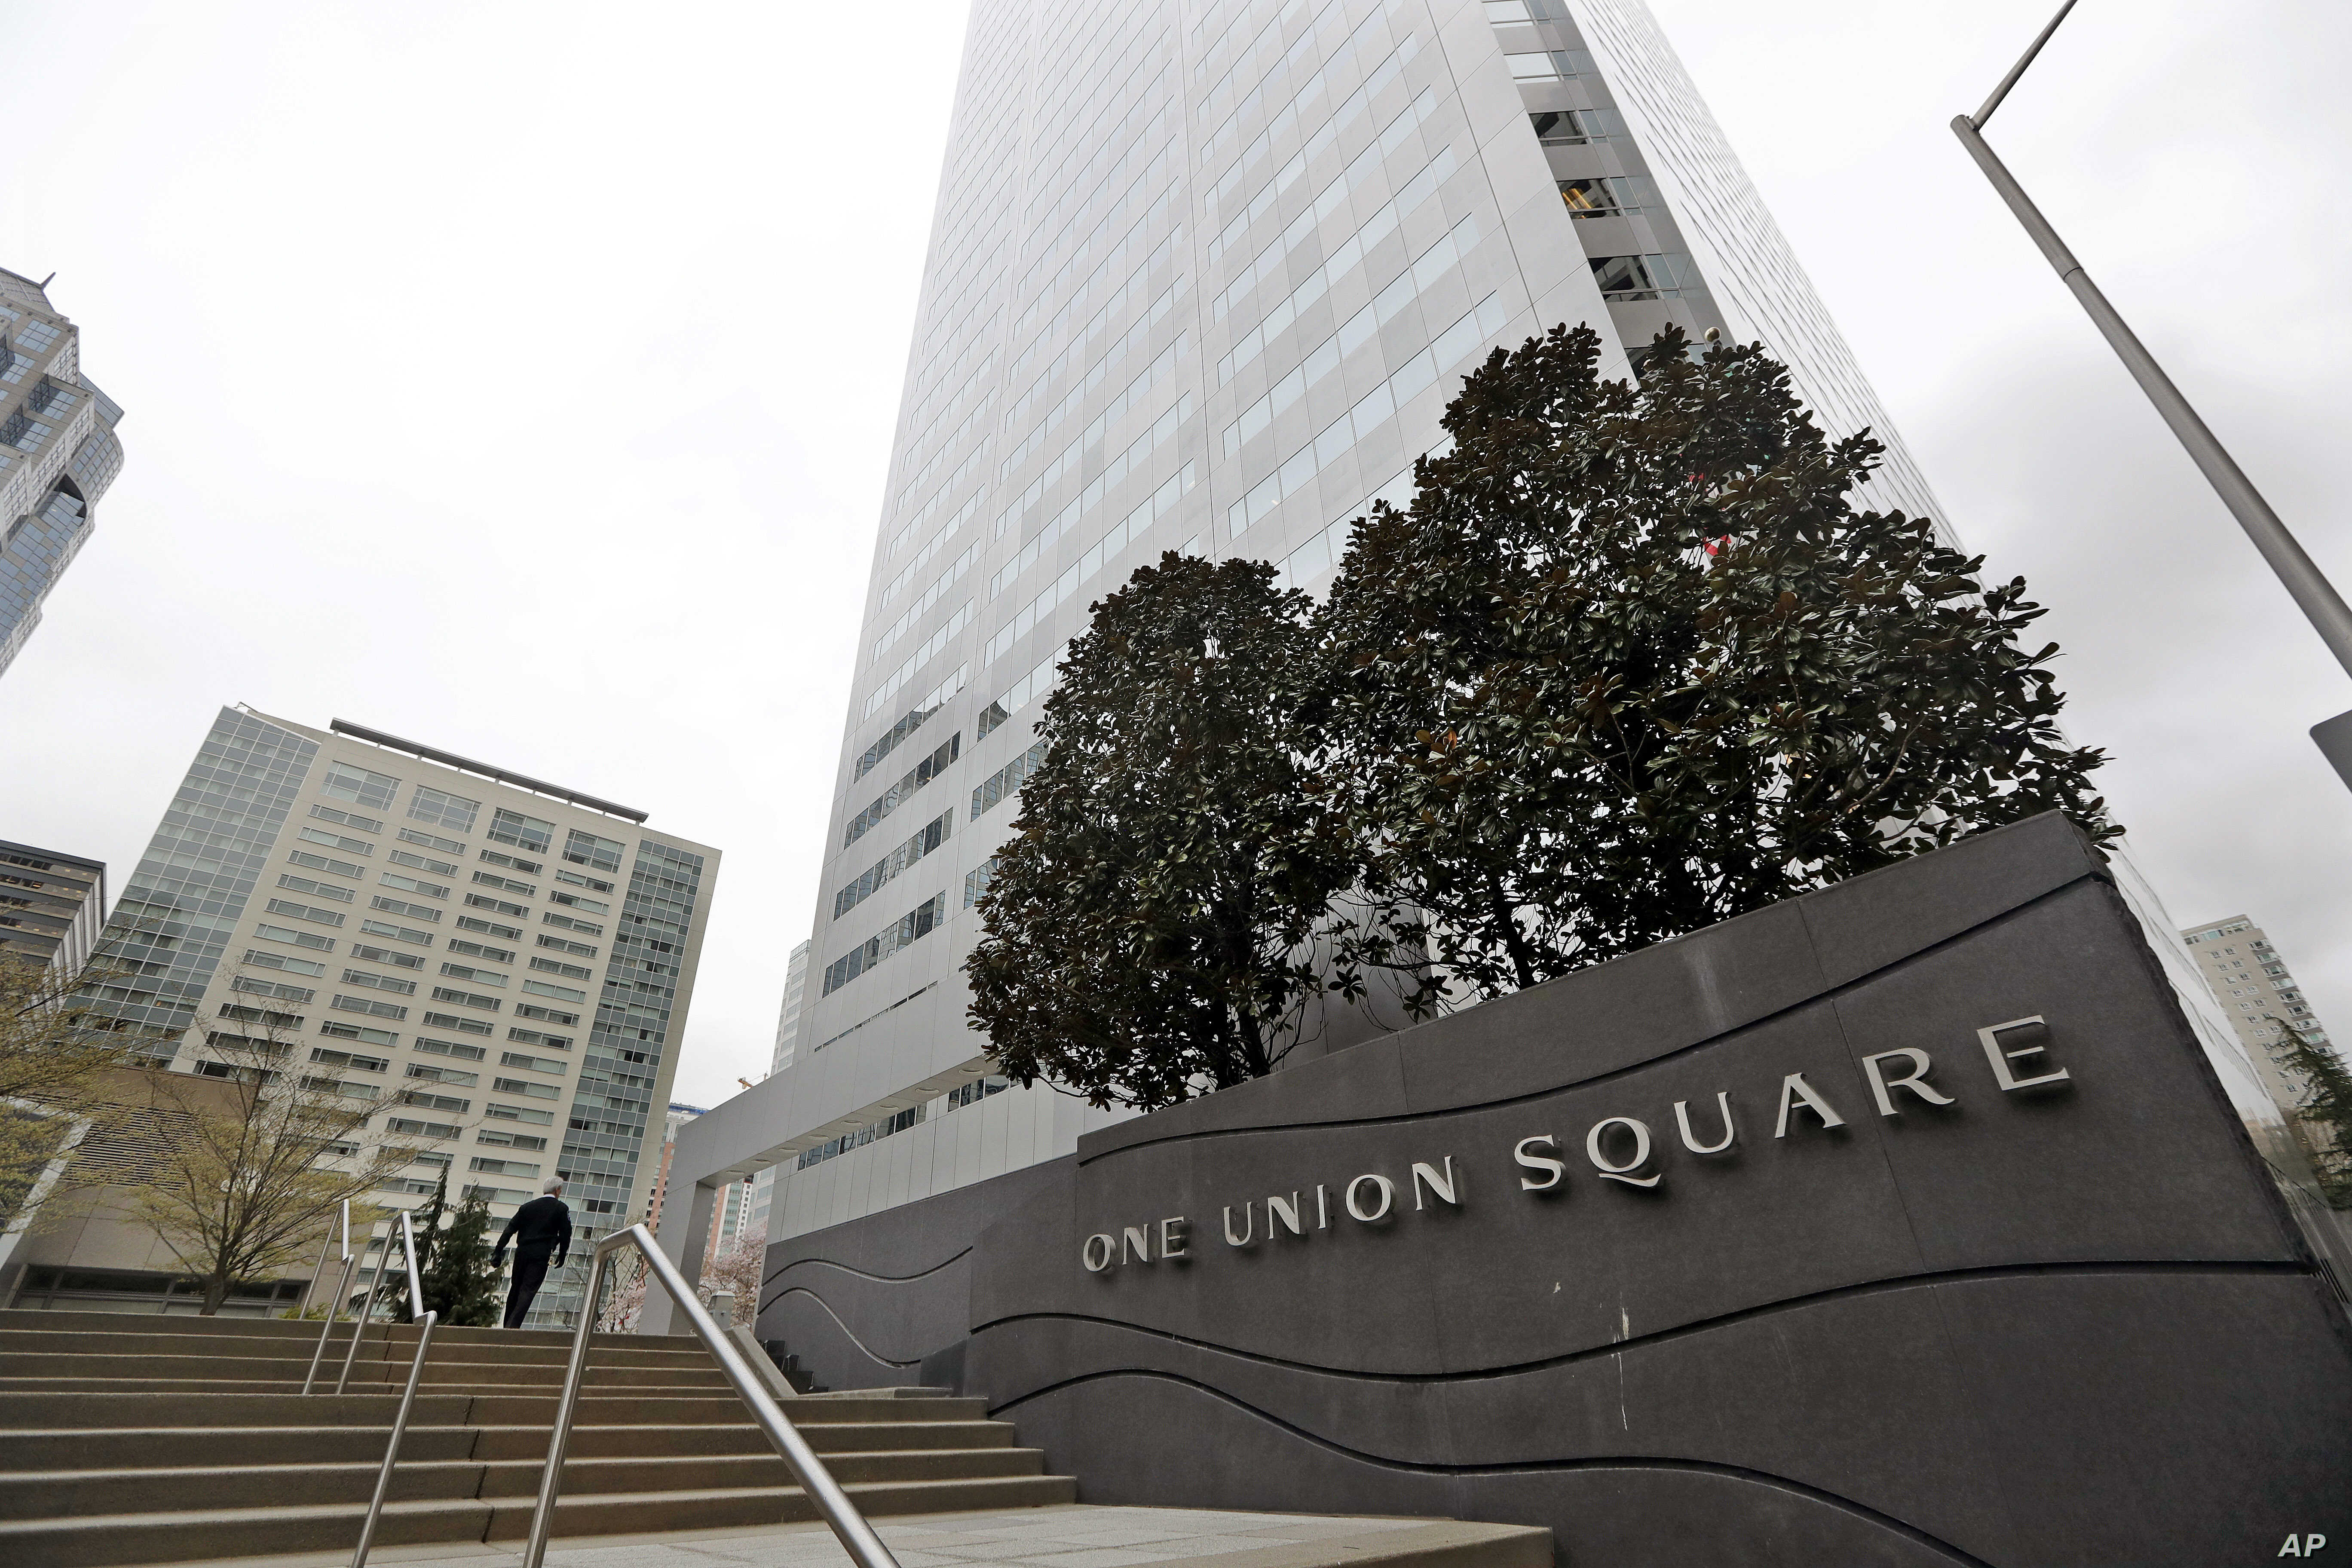 One Union Square, the downtown Seattle building that houses the Russian consulate on the 25th floor, is seen Monday, March 26, 2018.